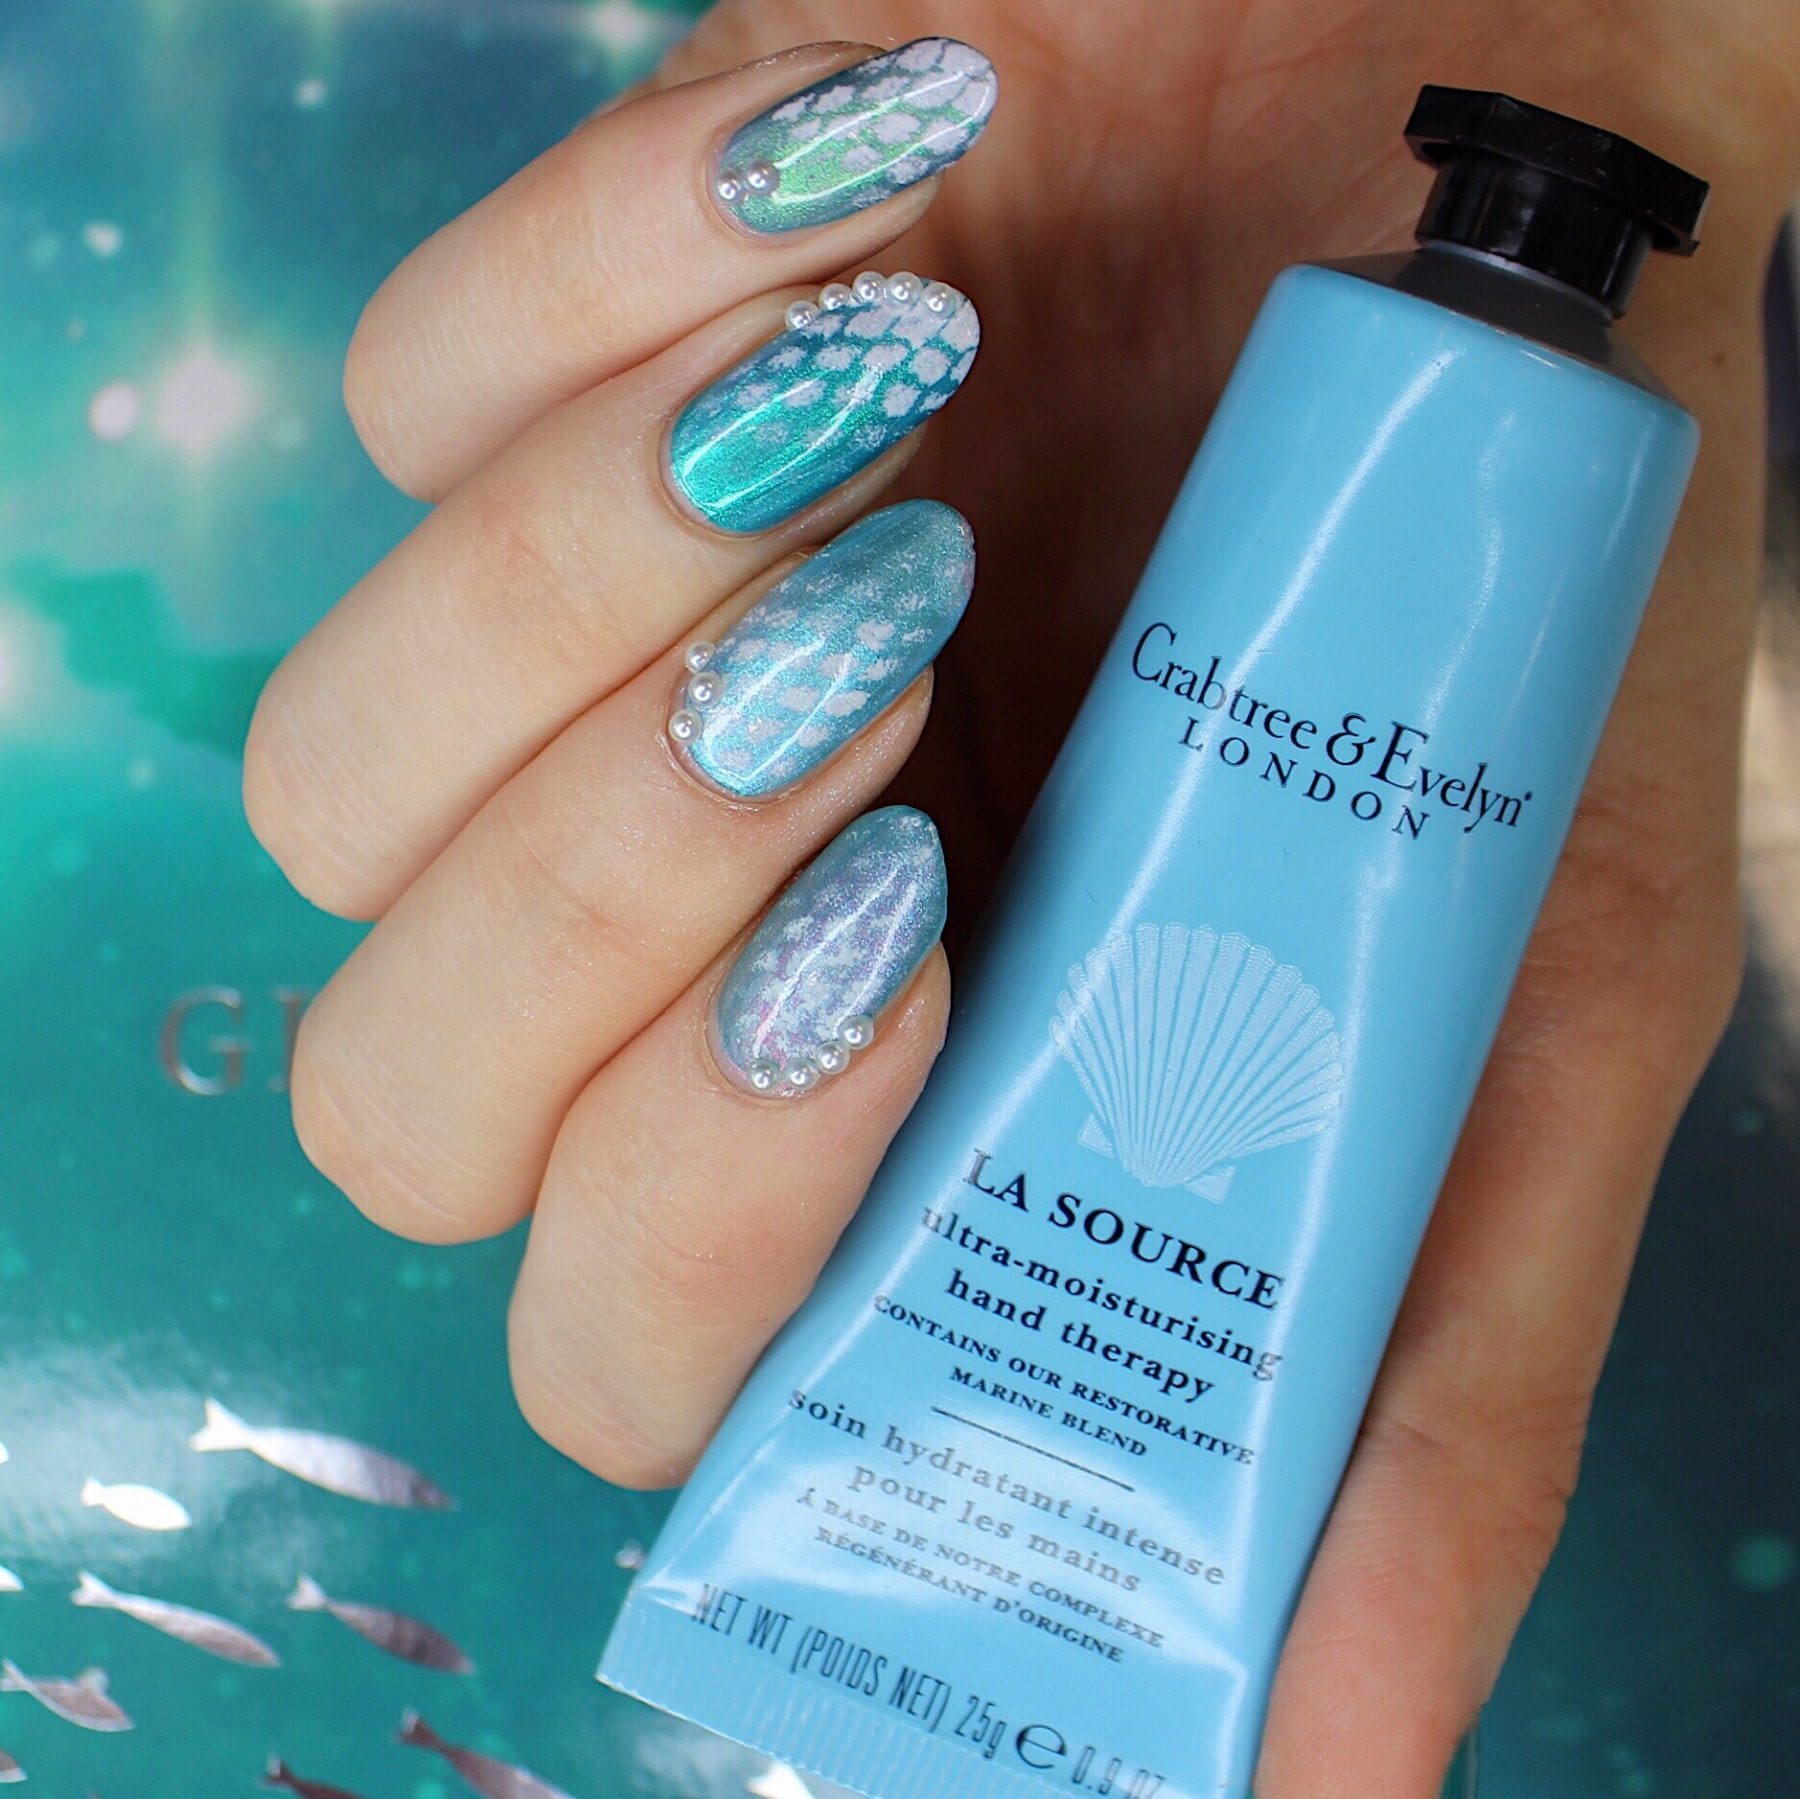 Under The Sea Nails: a complete manicure